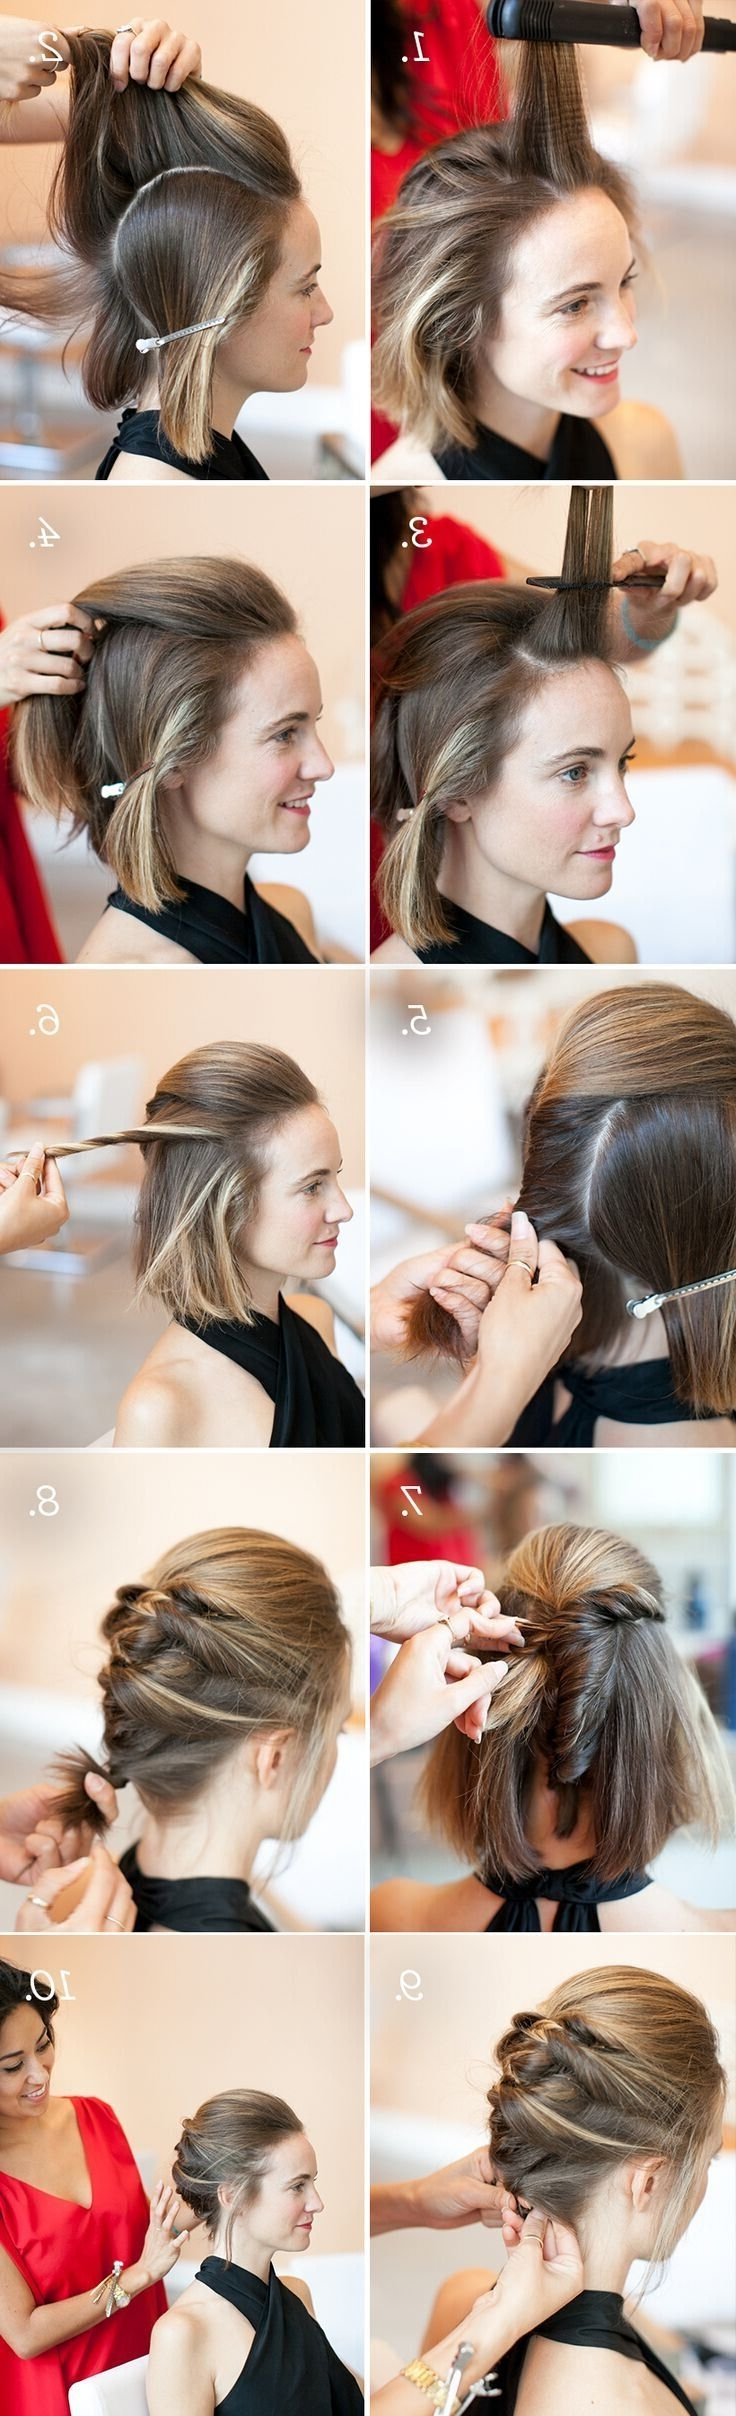 Current Unique Braided Up Do Ponytail Hairstyles Within 20 Exciting New Intricate Braid Updo Hairstyles – Popular Haircuts (View 5 of 20)